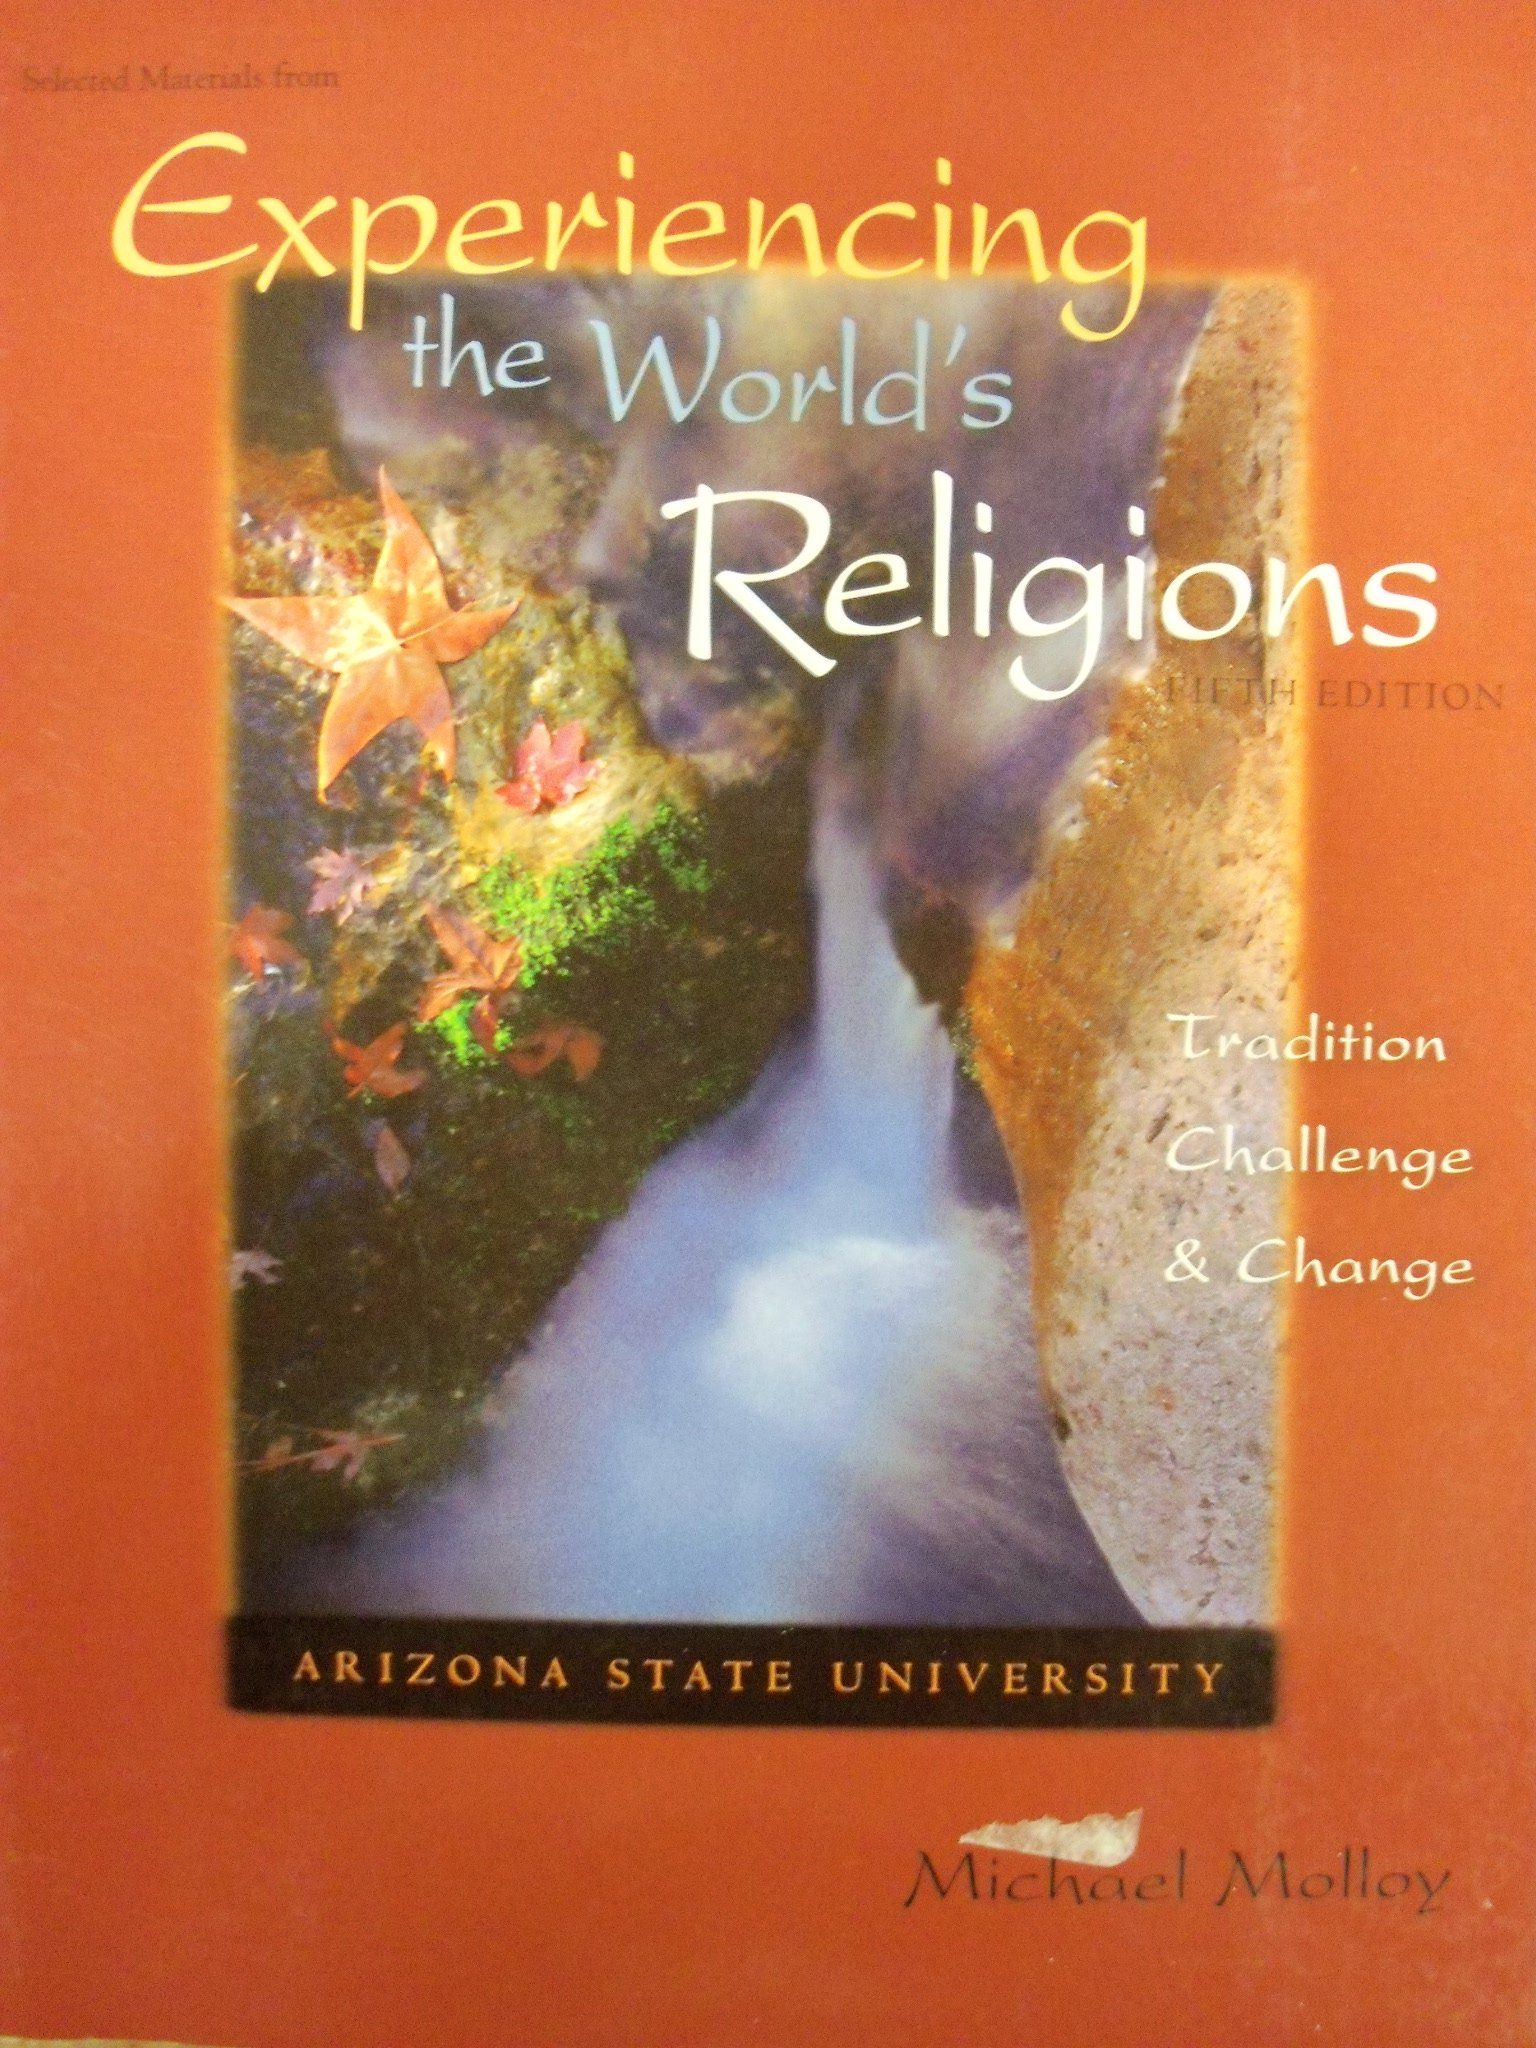 Experiencing the World's Religions: Tradition, Challenge, and Change:  Michael Molloy: 9780077497705: Amazon.com: Books